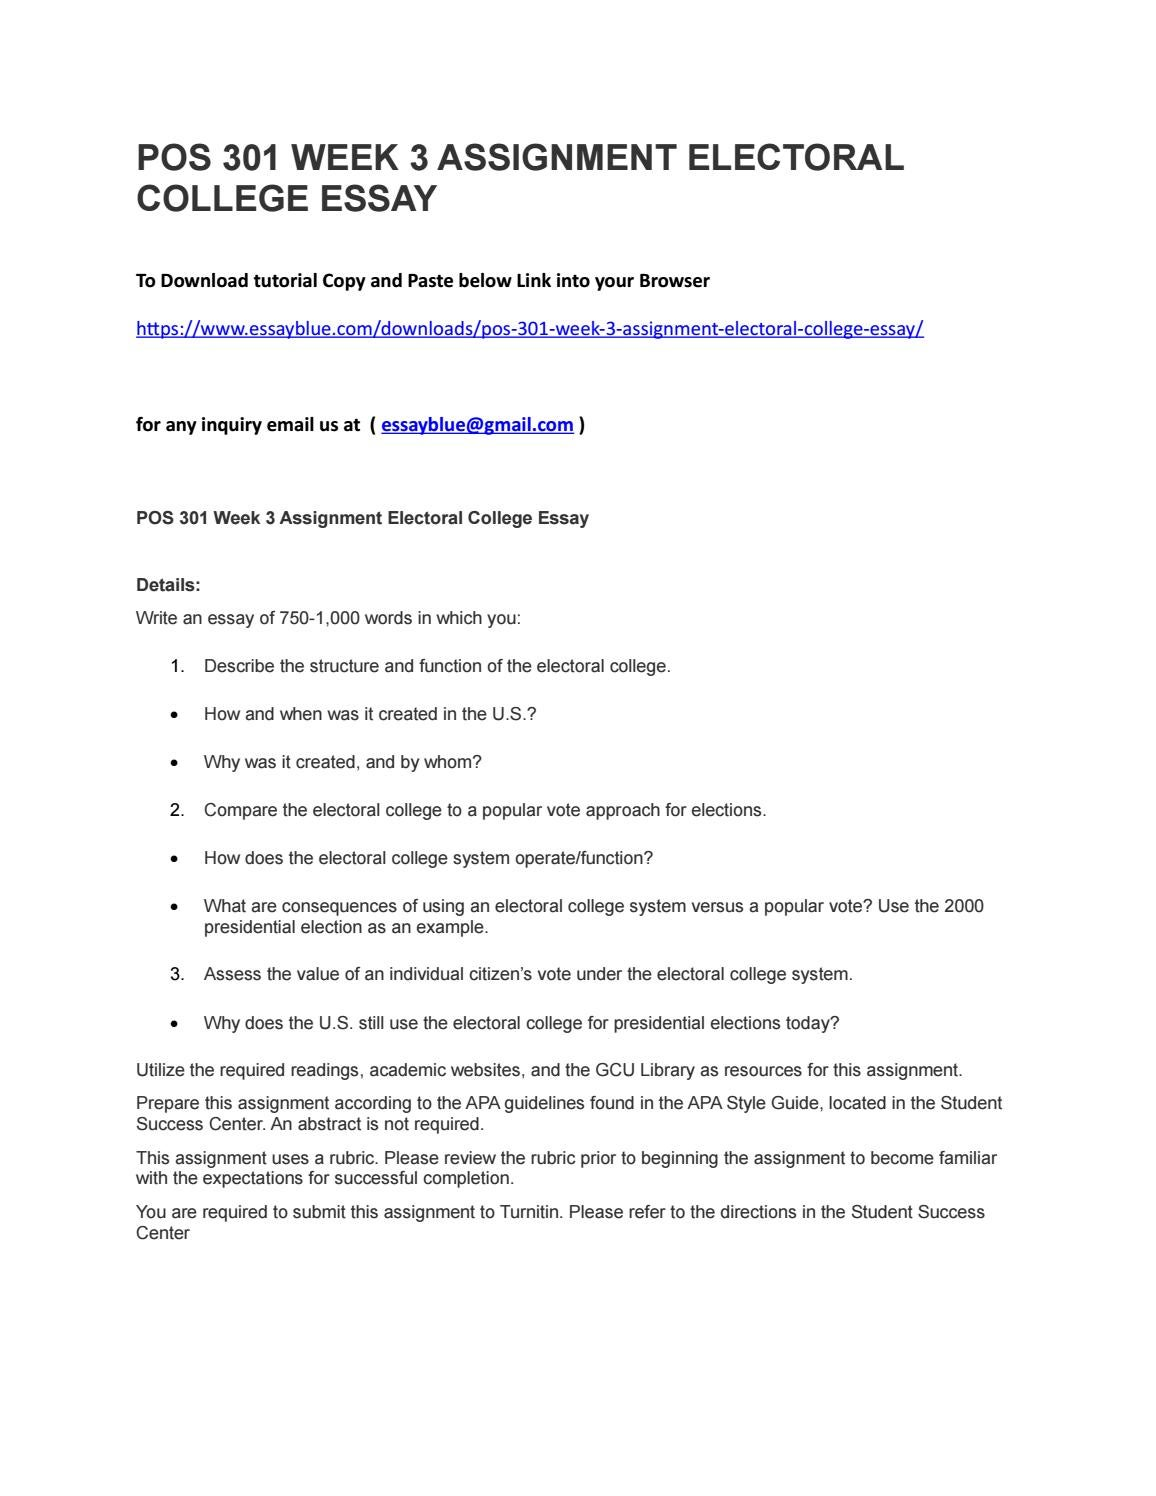 Business Ethics Essays  Modest Proposal Essay Ideas also Science Technology Essay Pos  Week  Assignment Electoral College Essay By Kenigodfrey  Issuu Argument Essay Paper Outline